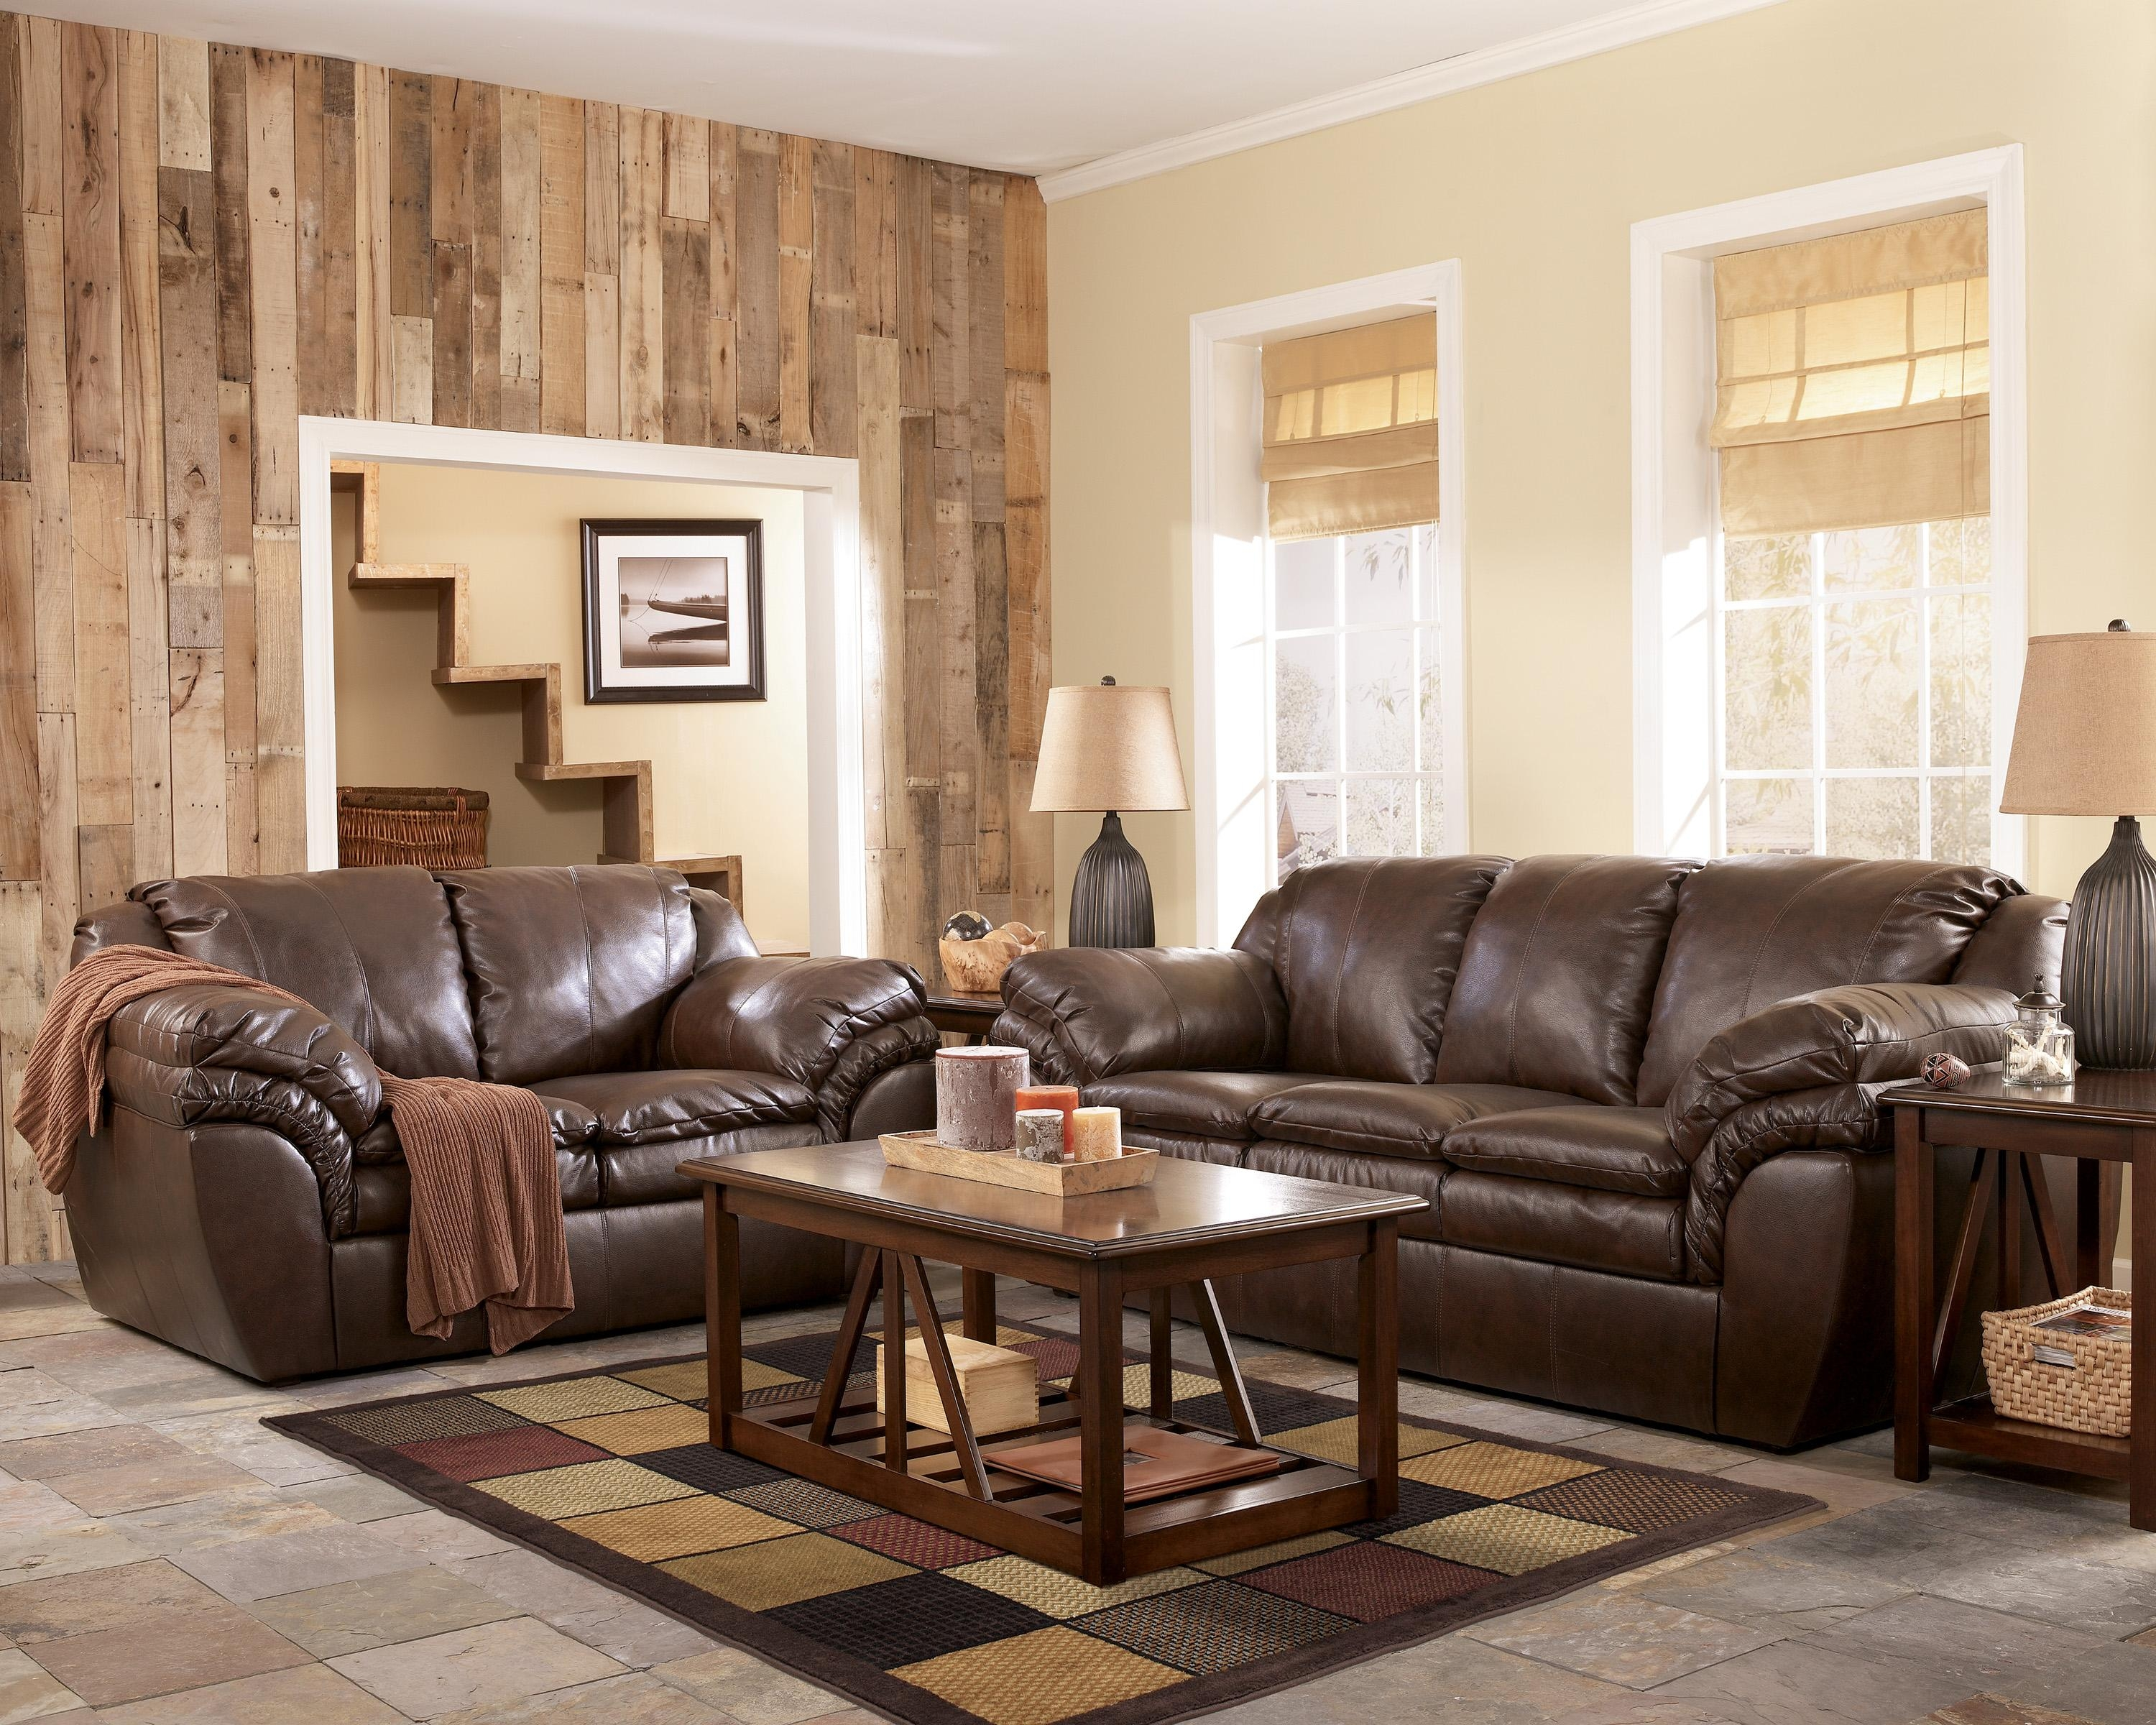 Chair & Sofa: Have An Interesting Living Room With Ashley Pertaining To Ashley Sectional Sleeper (View 9 of 15)